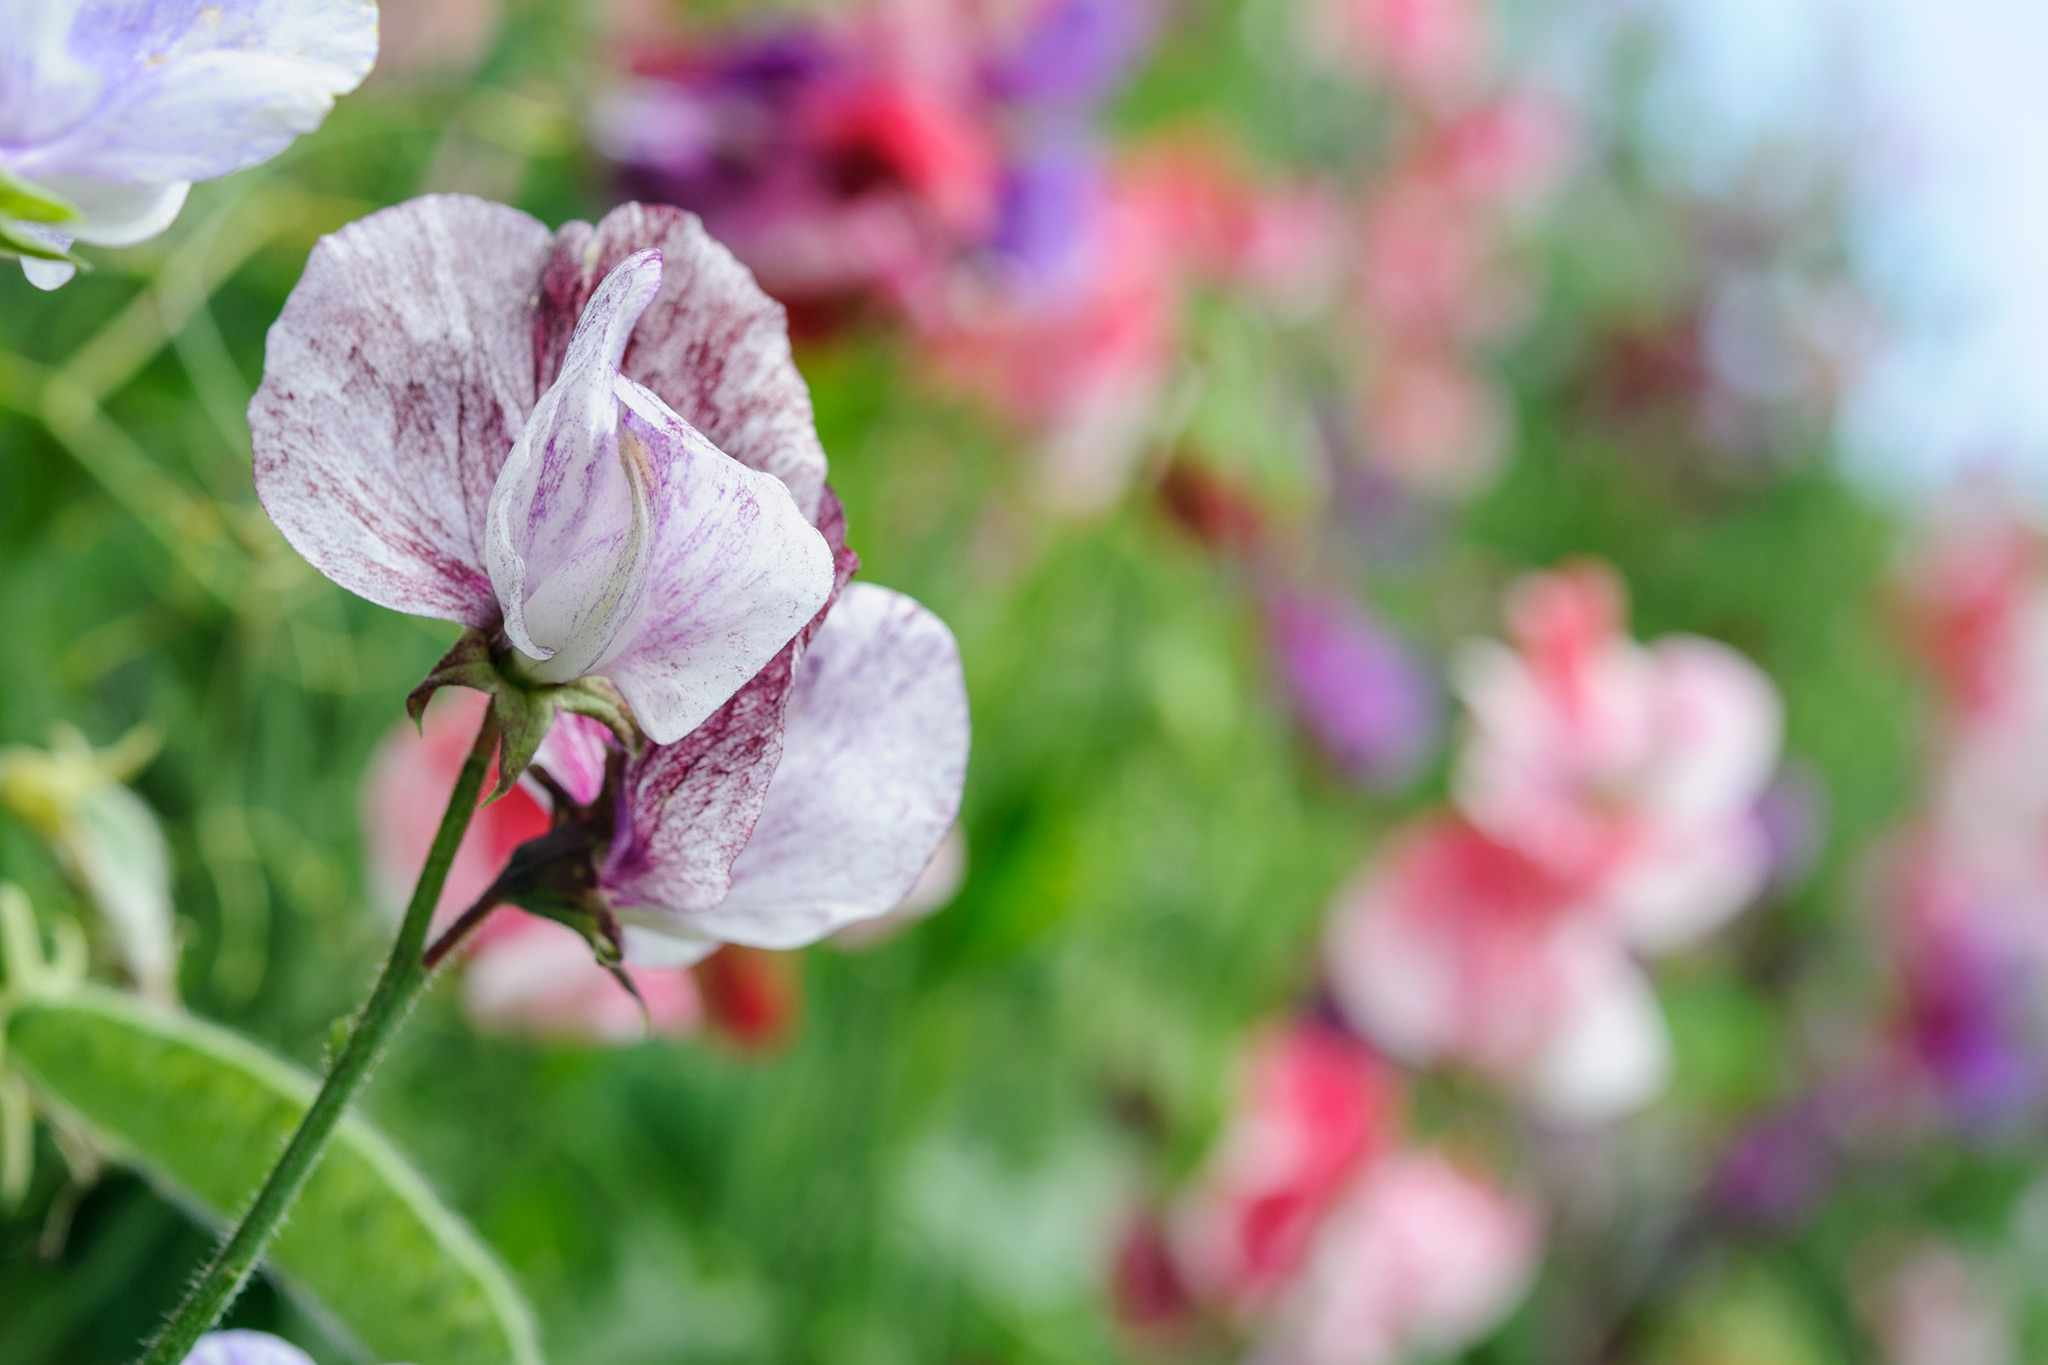 Sowing sweet peas in spring video